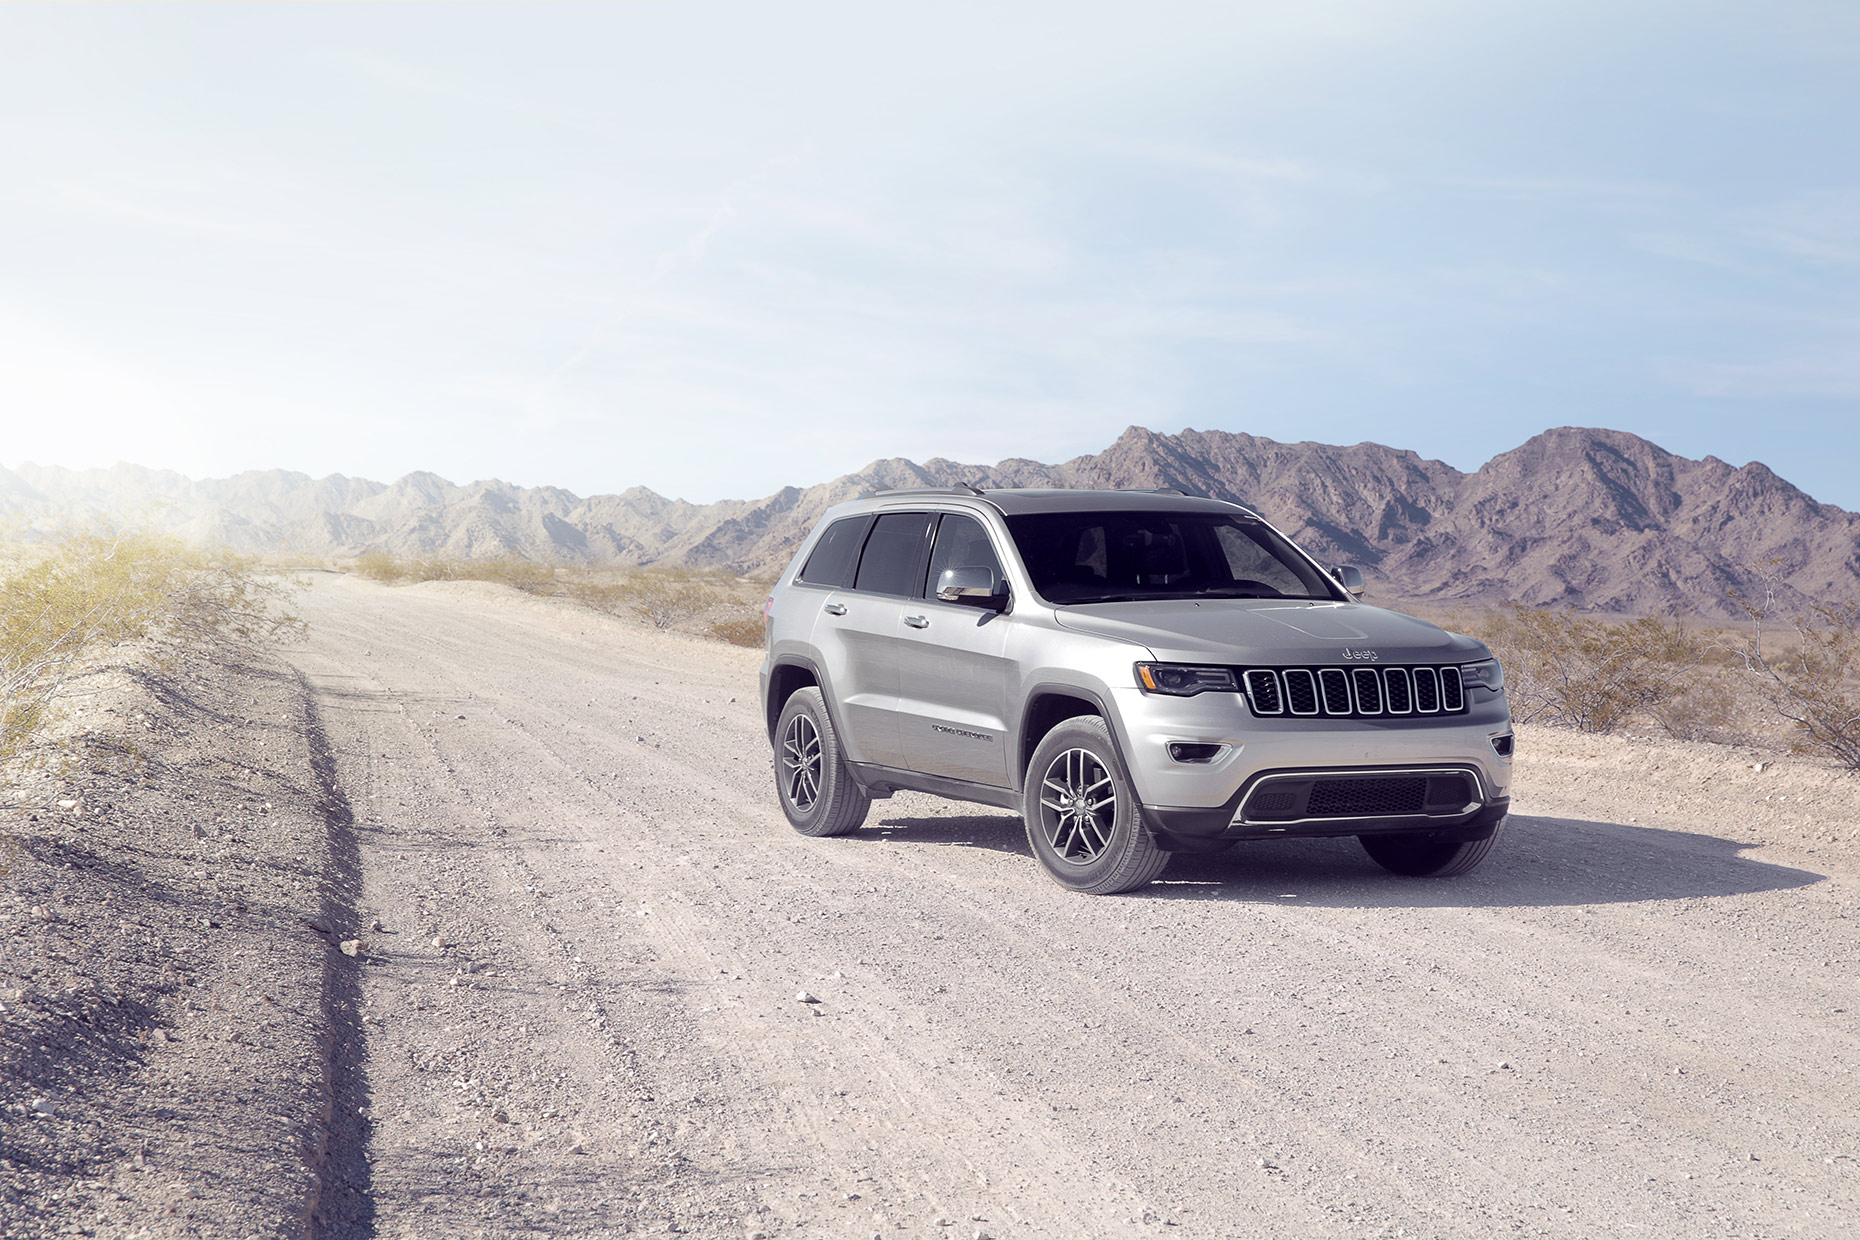 Jeep-Grand-Cherokee-desert